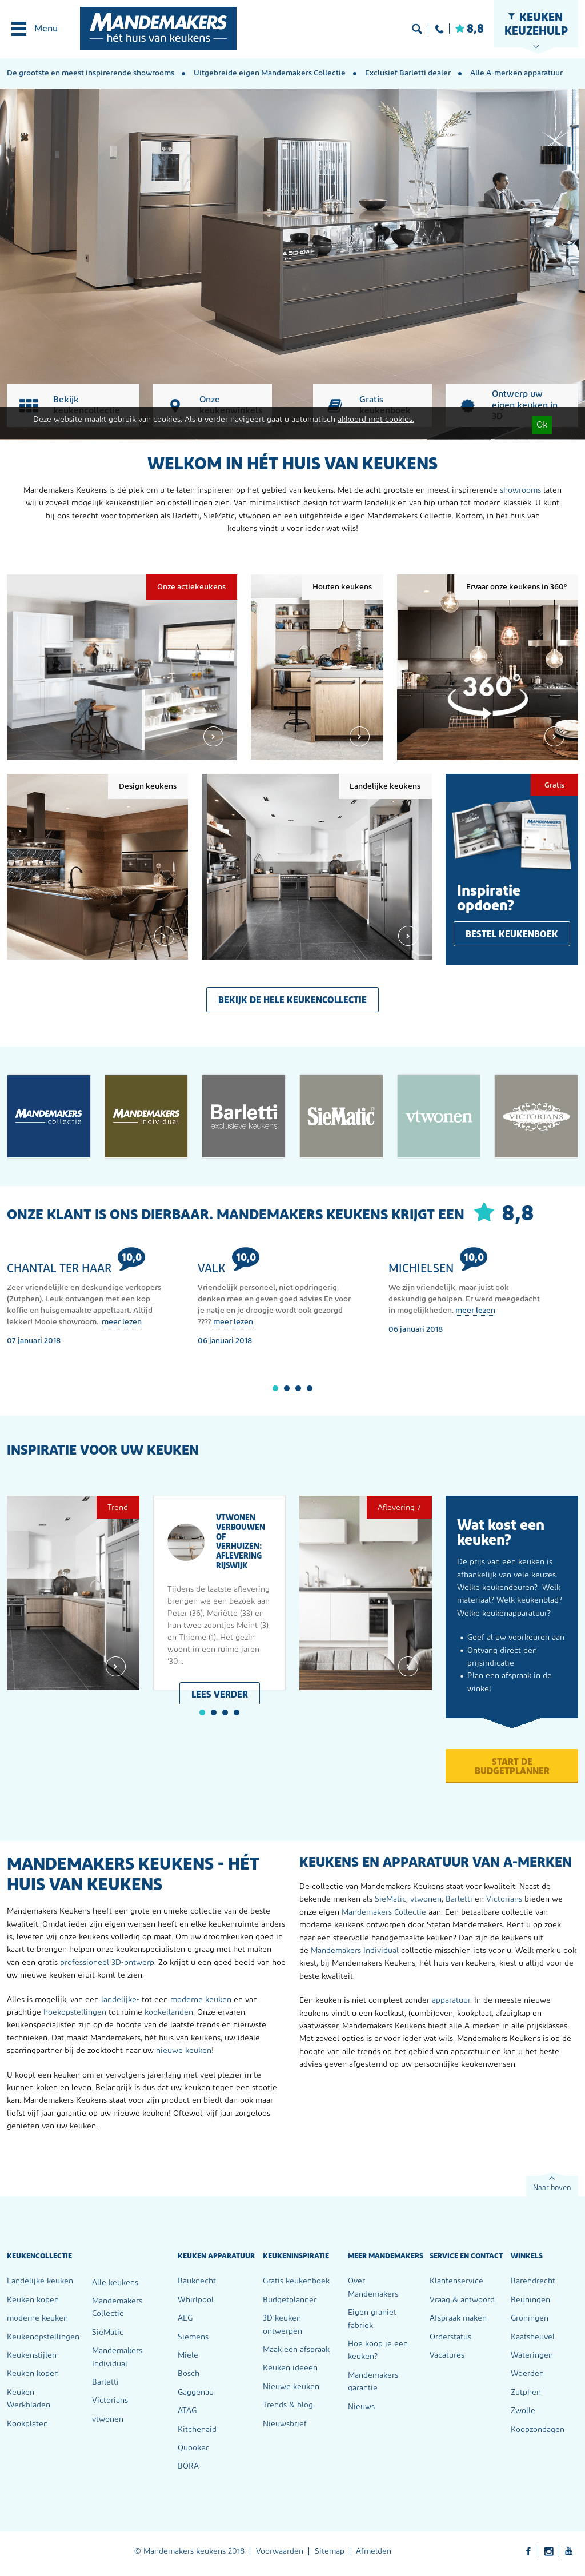 Keuken Ontwerpen Mandemakers Mandemakers Keukens Competitors Revenue And Employees Owler